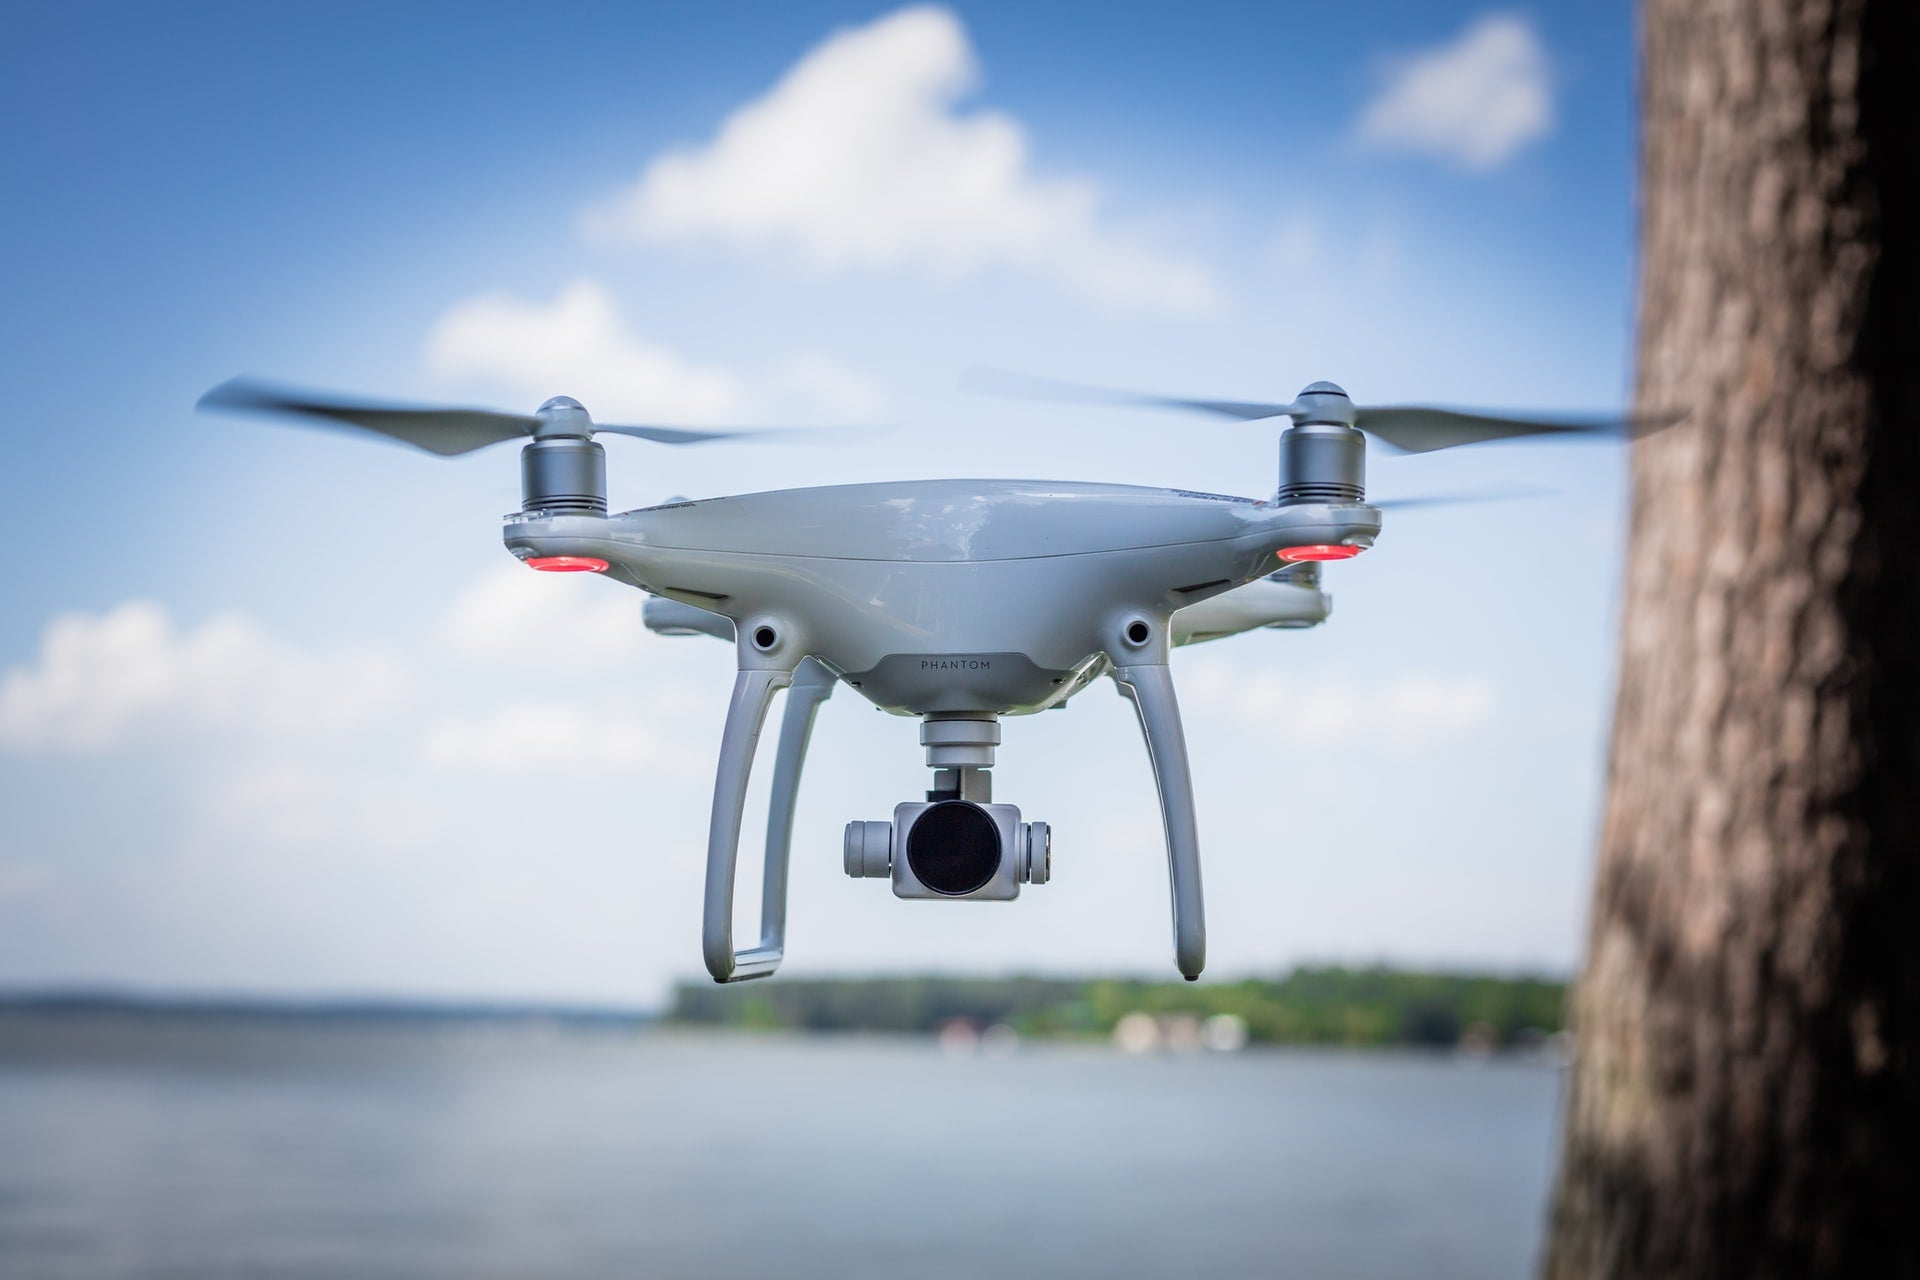 a drone hovers next to a lake and a tree